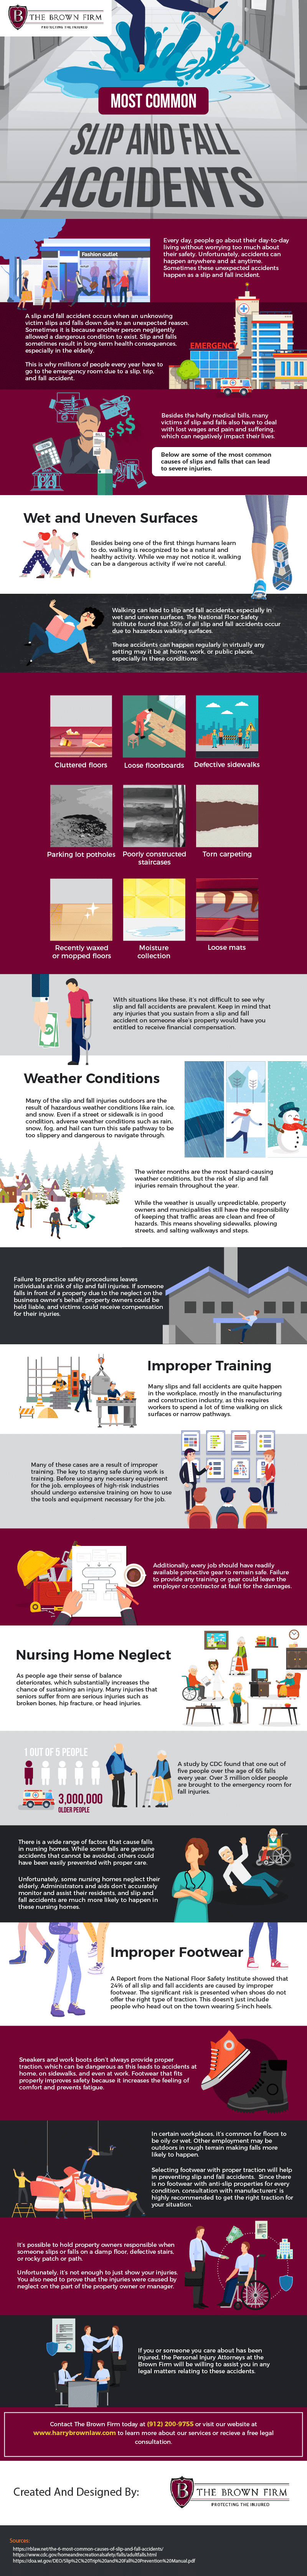 most common slip and fall accidents infographic